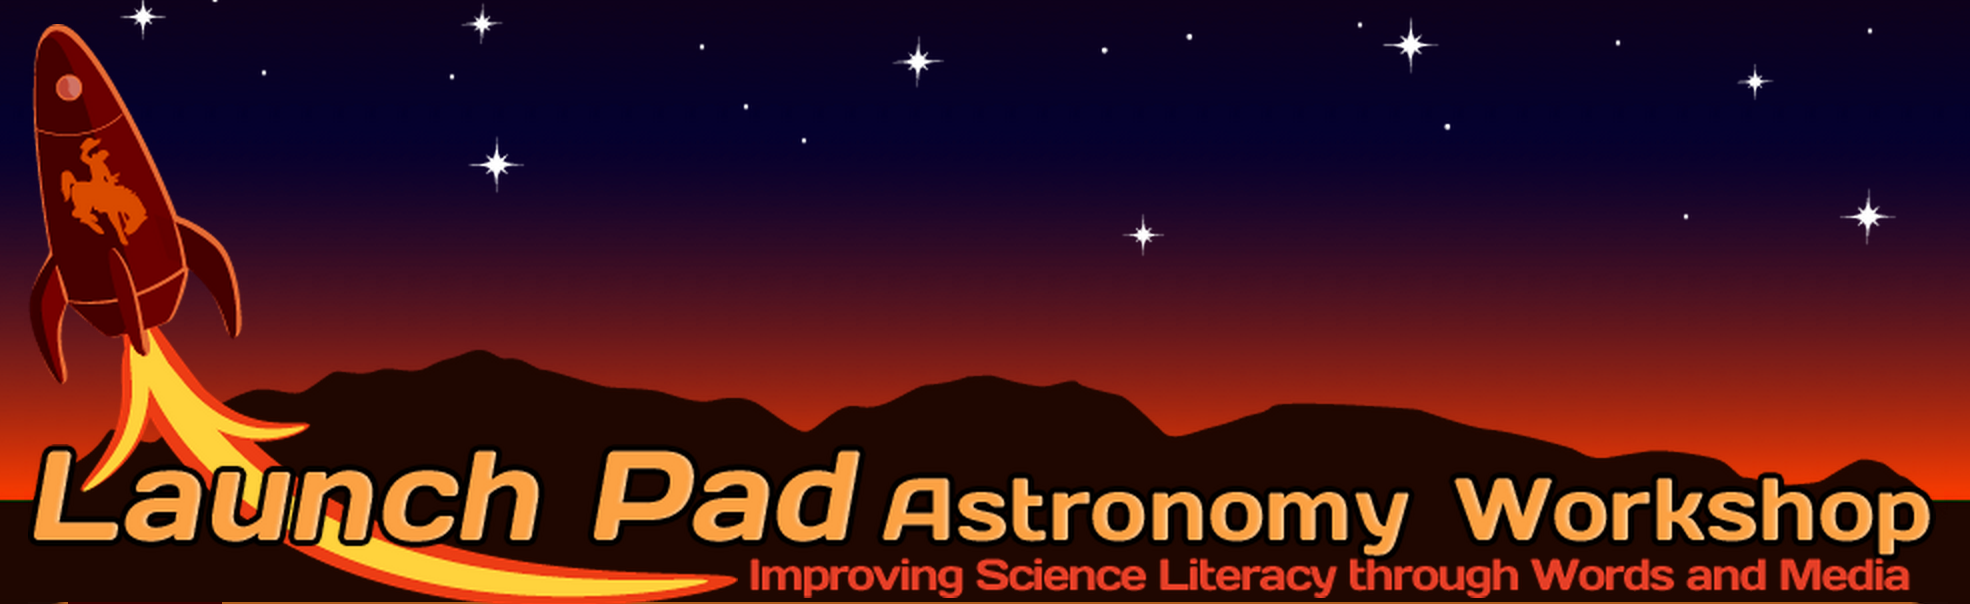 The Wonder of the Launch Pad Astronomy Workshop